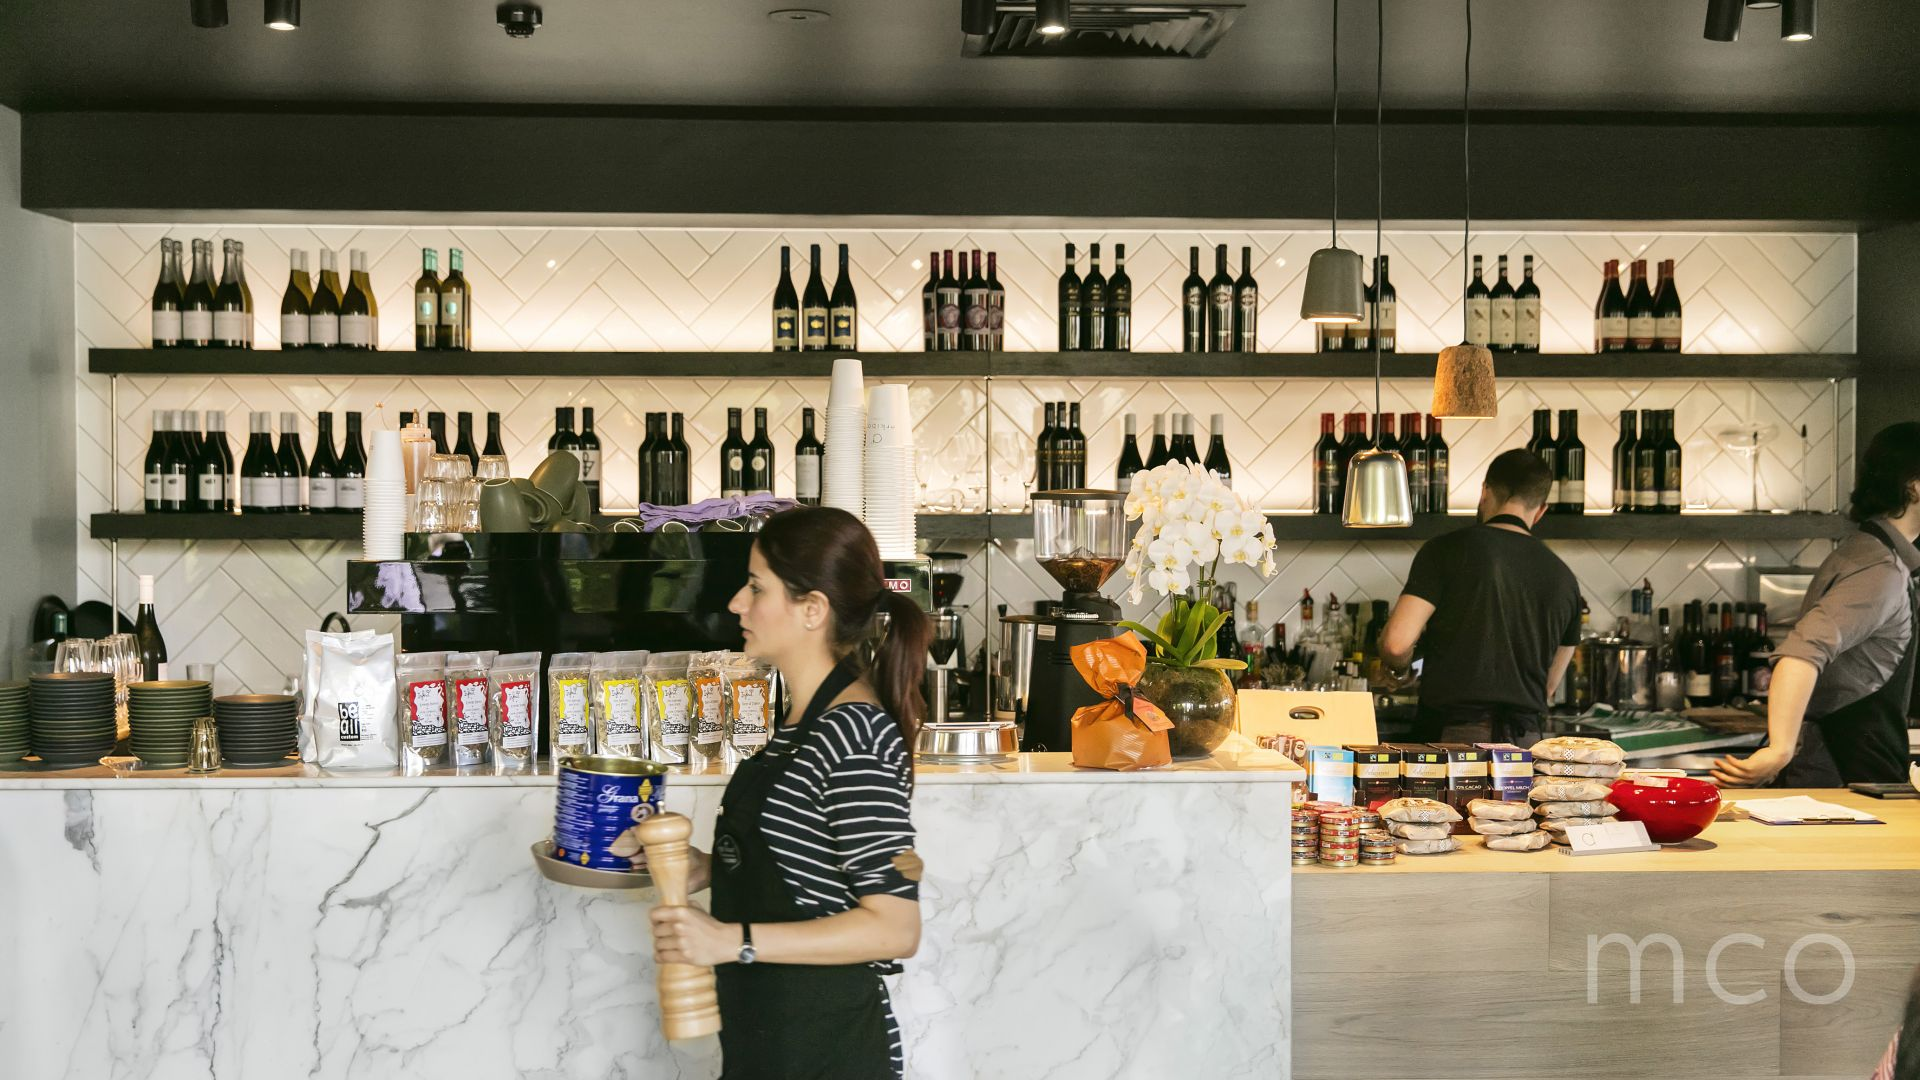 Rare leasing opportunity in iconic South Melbourne location